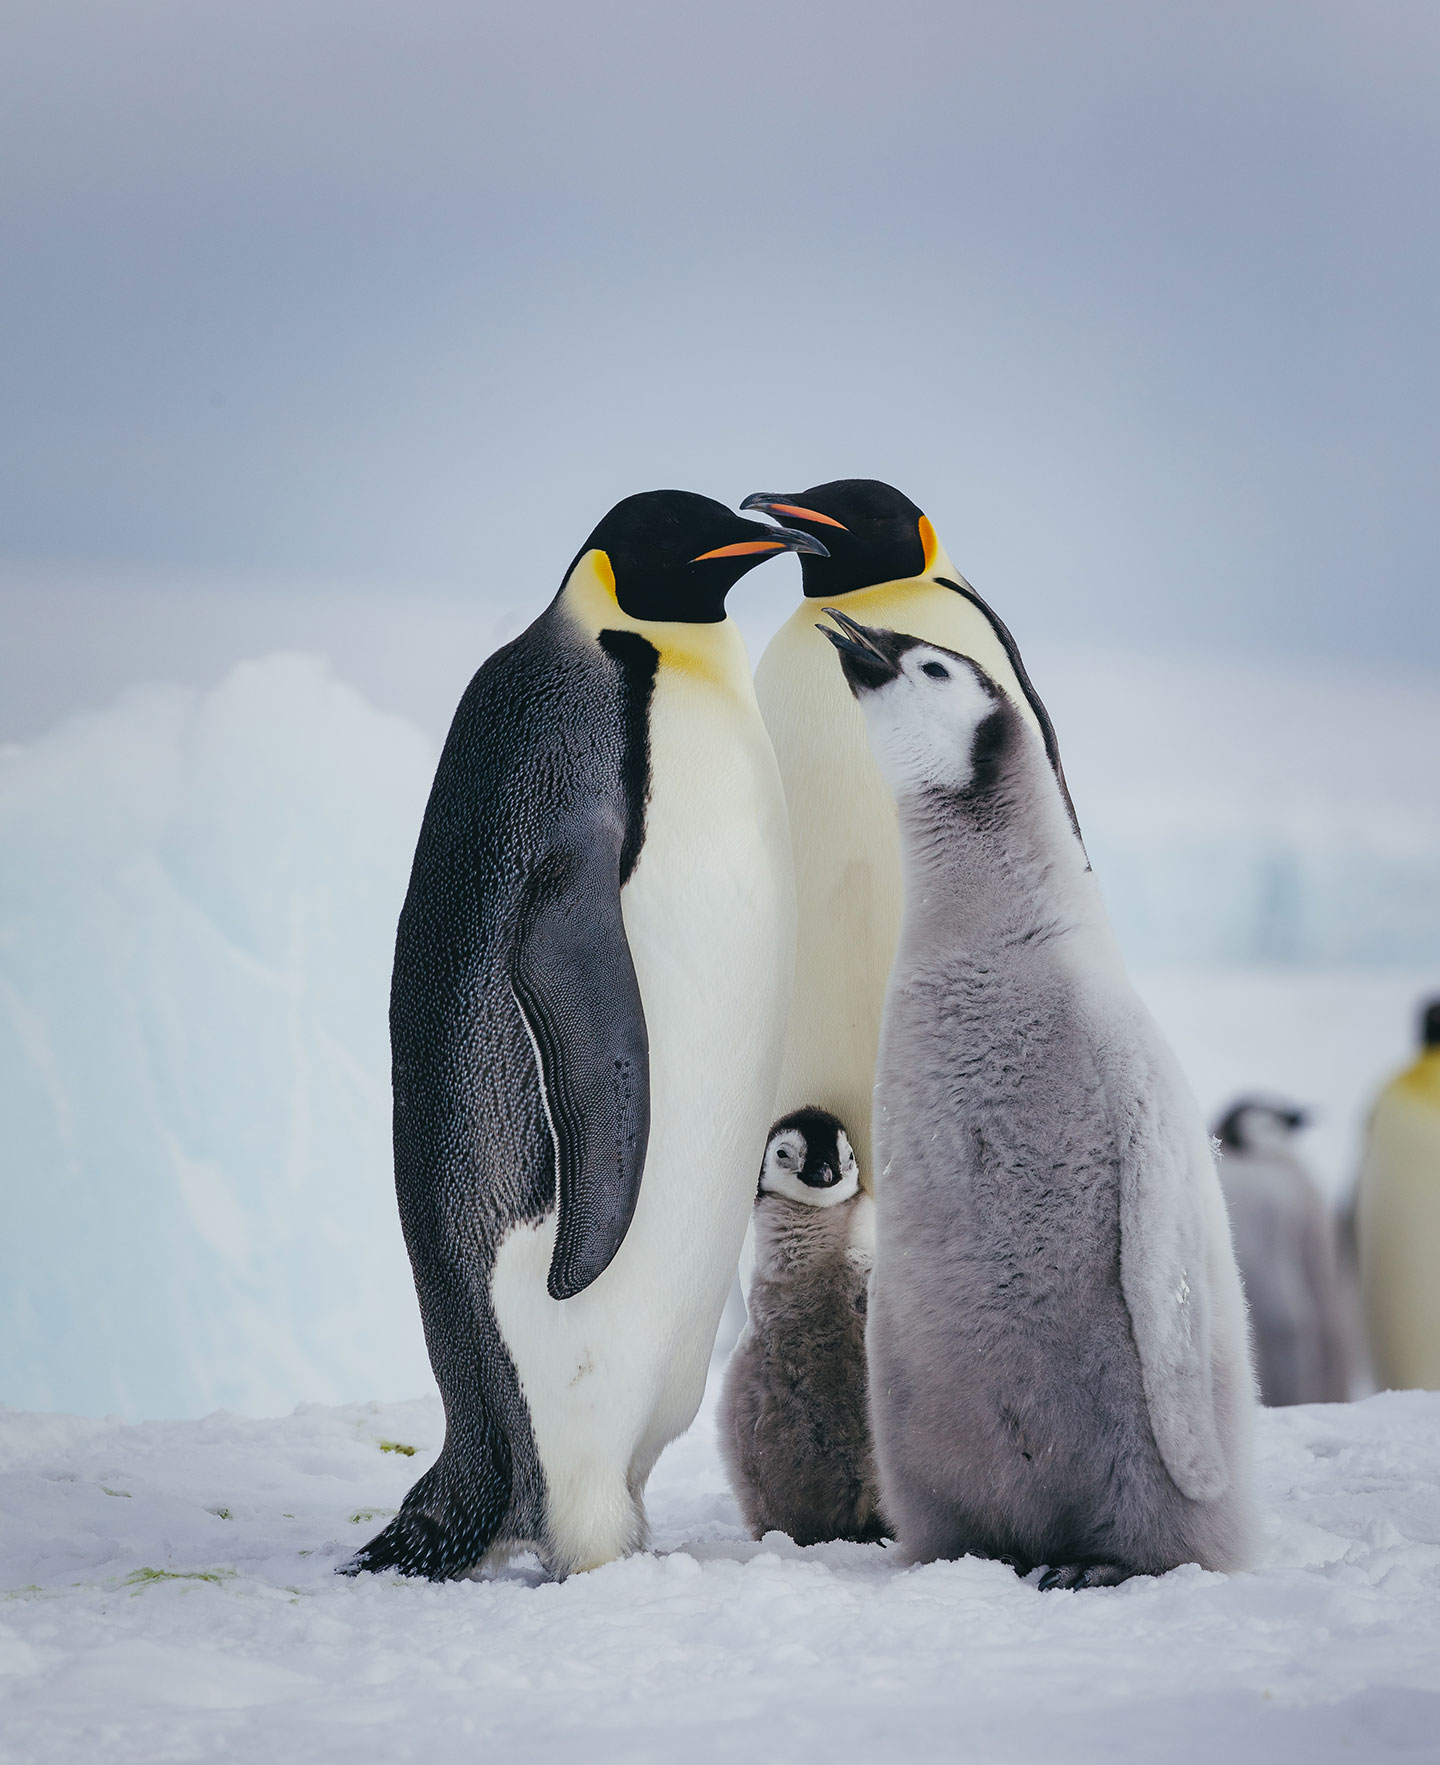 Emperor penguins raise chicks on the ice